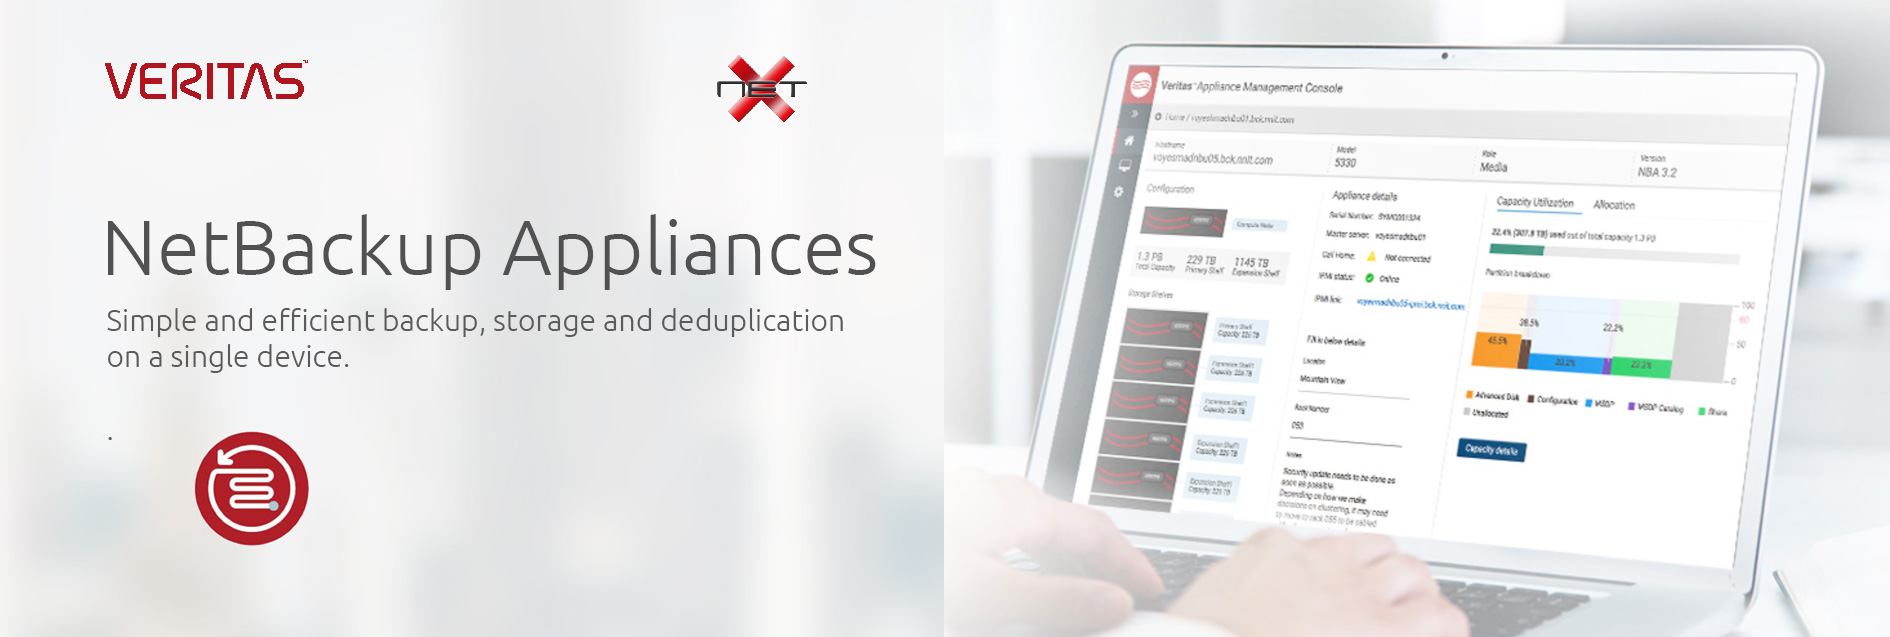 Veritas NetBackup Appliances with Netx Banner